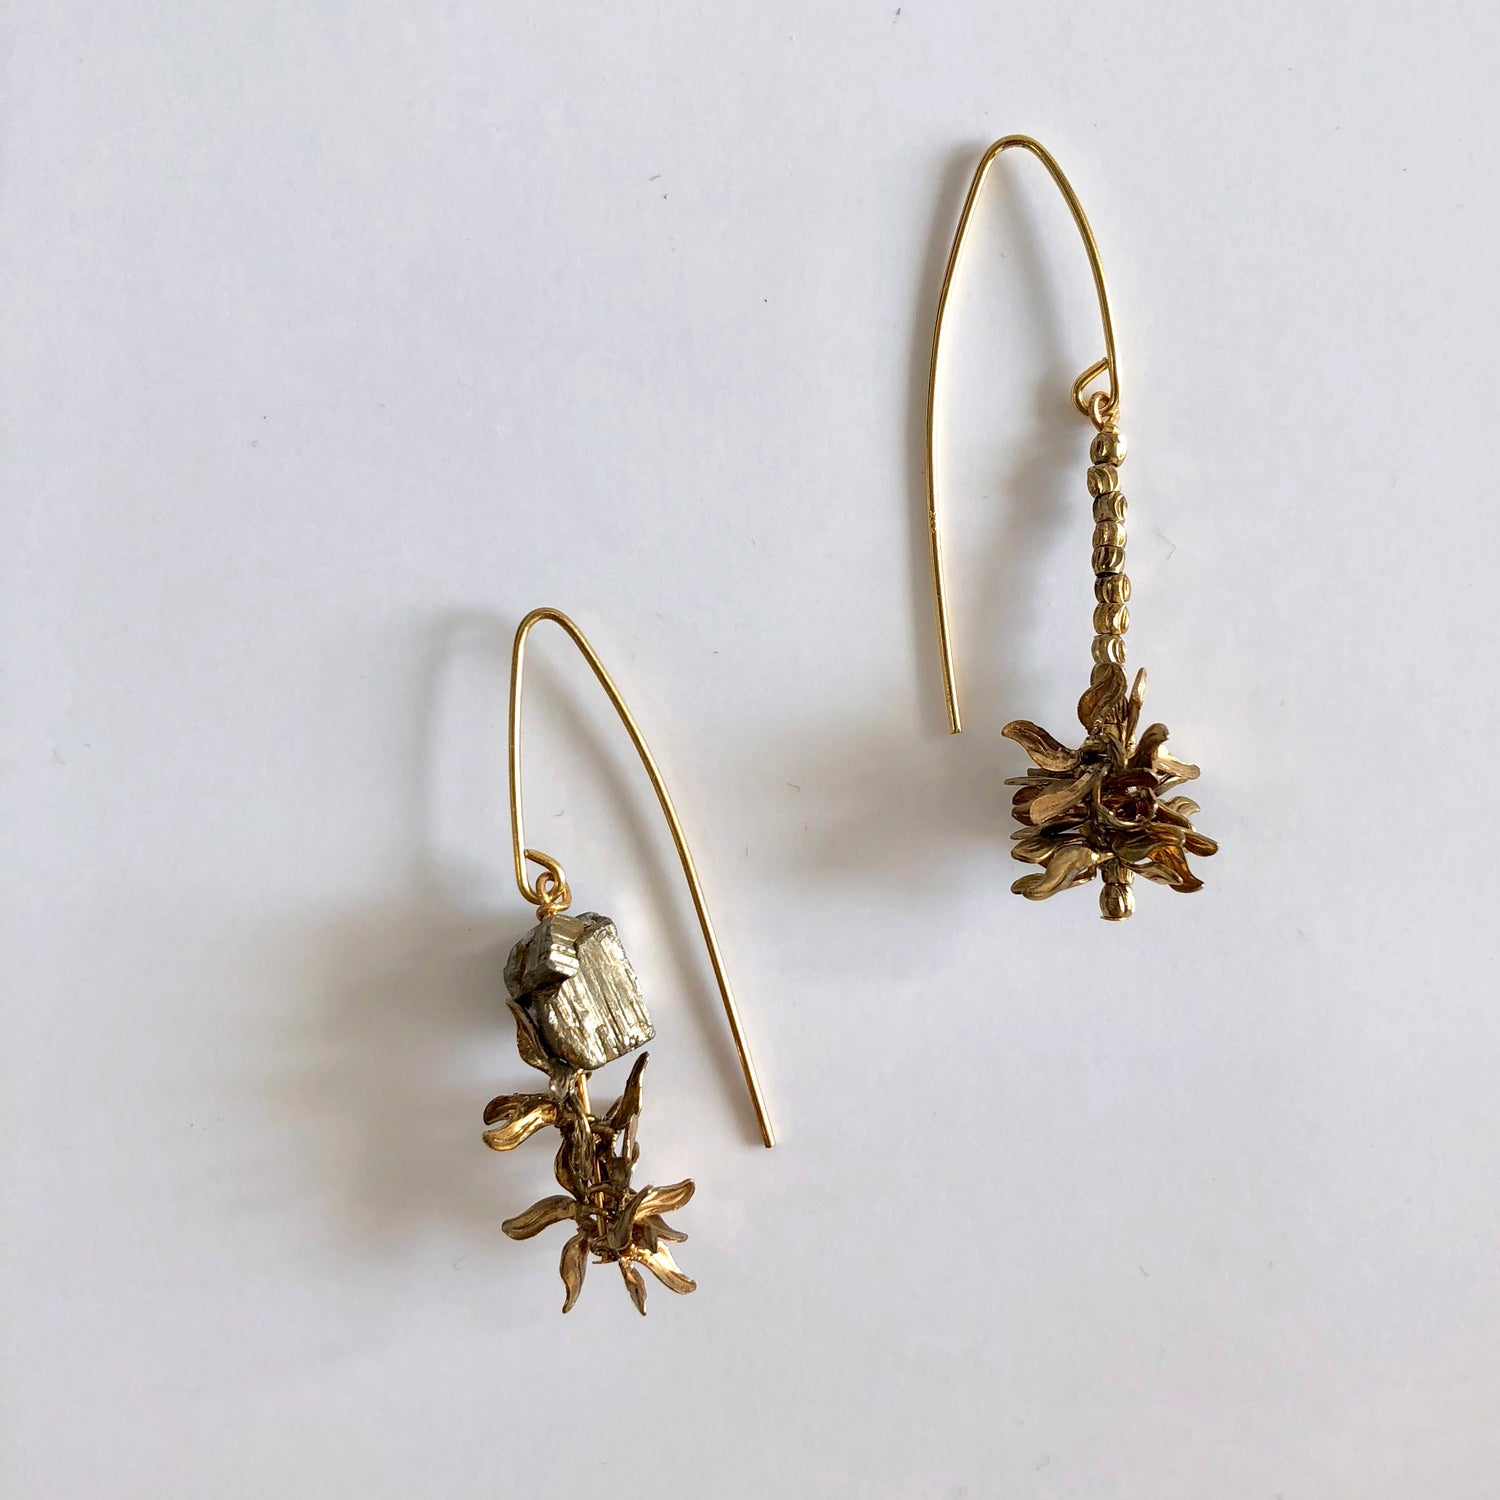 Image of Poppy Seed head earrings